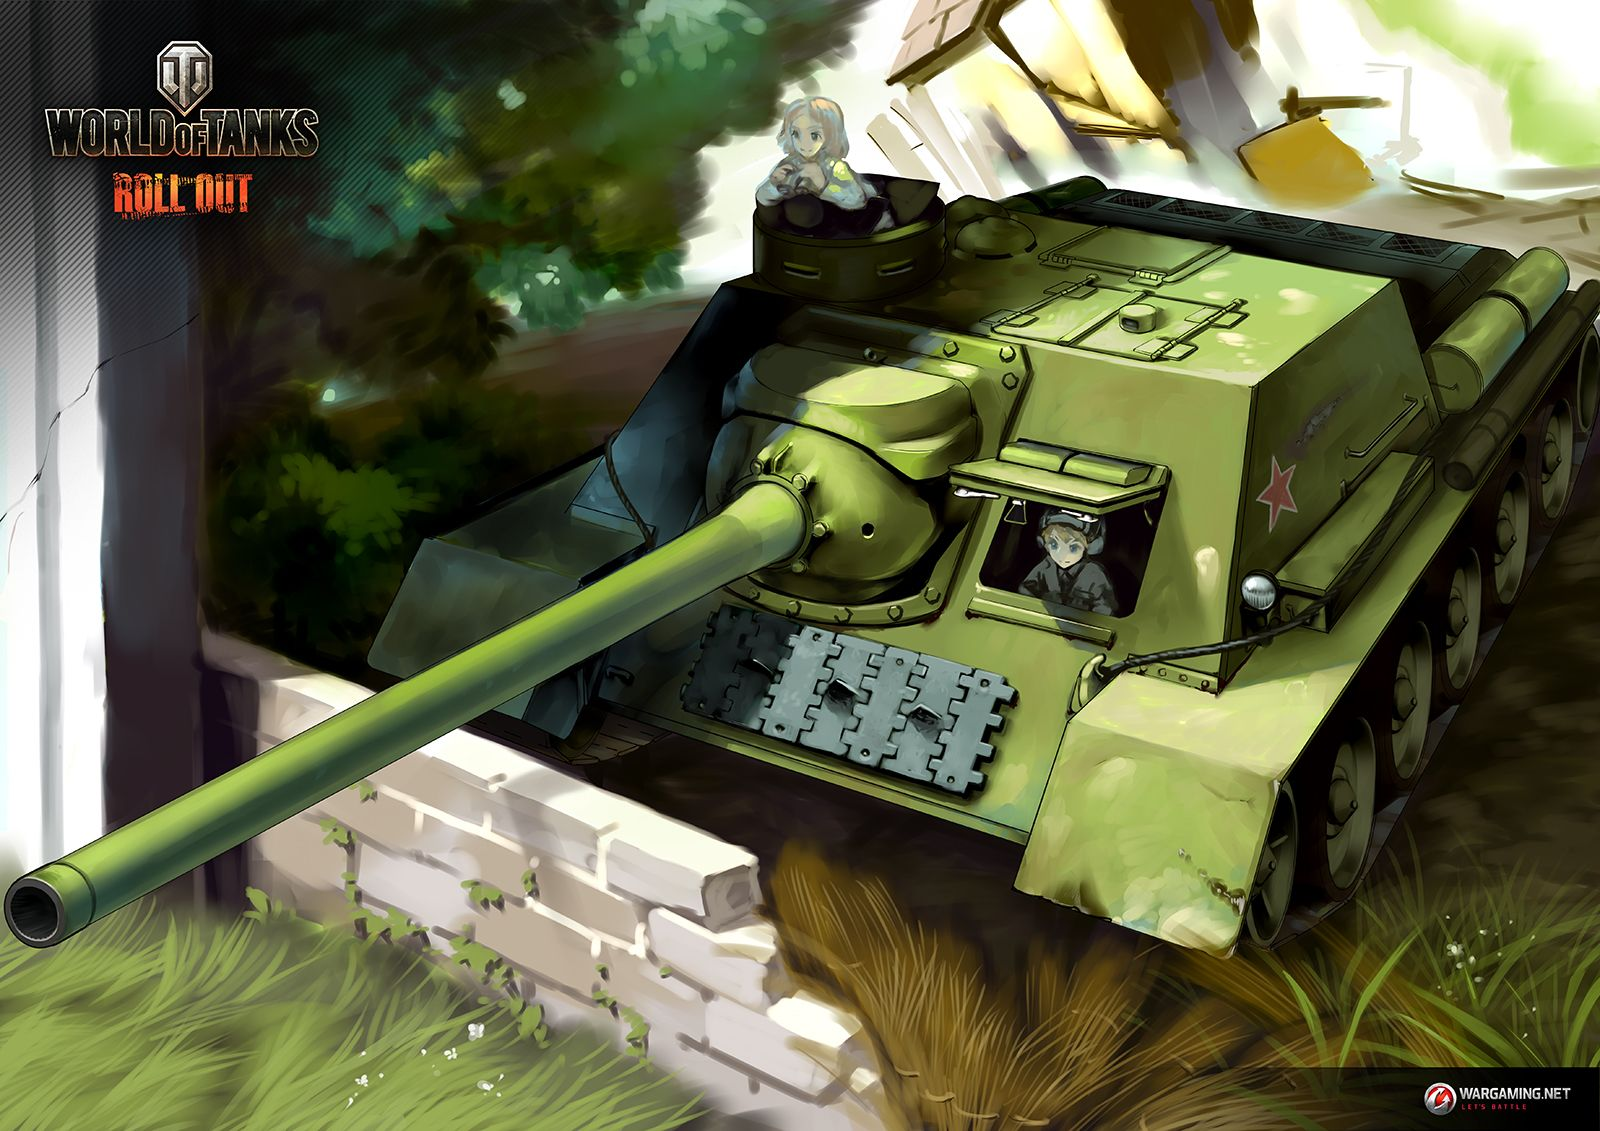 Tank Illustrations Artist S Choice Part8 Su 100 Kurokuro Anime Tank World Of Tanks Anime Military